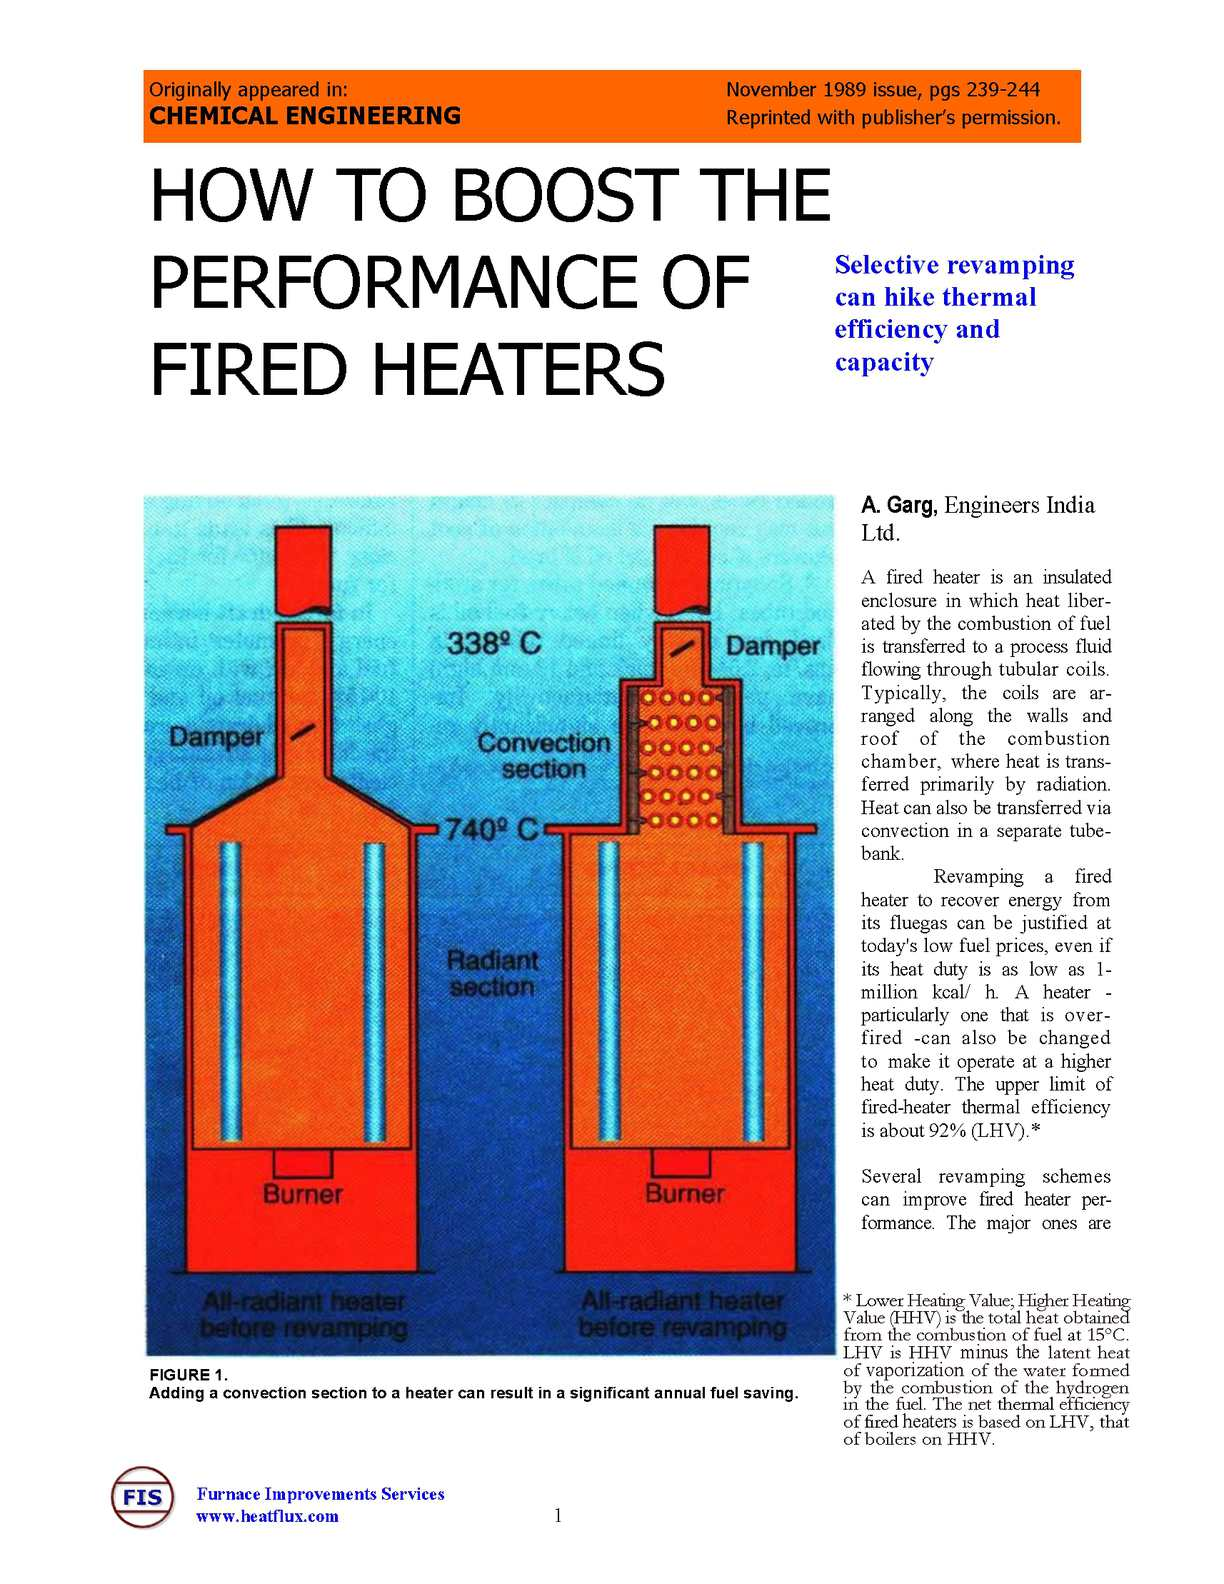 Calaméo - How to Boost the Performance of Fired Heaters